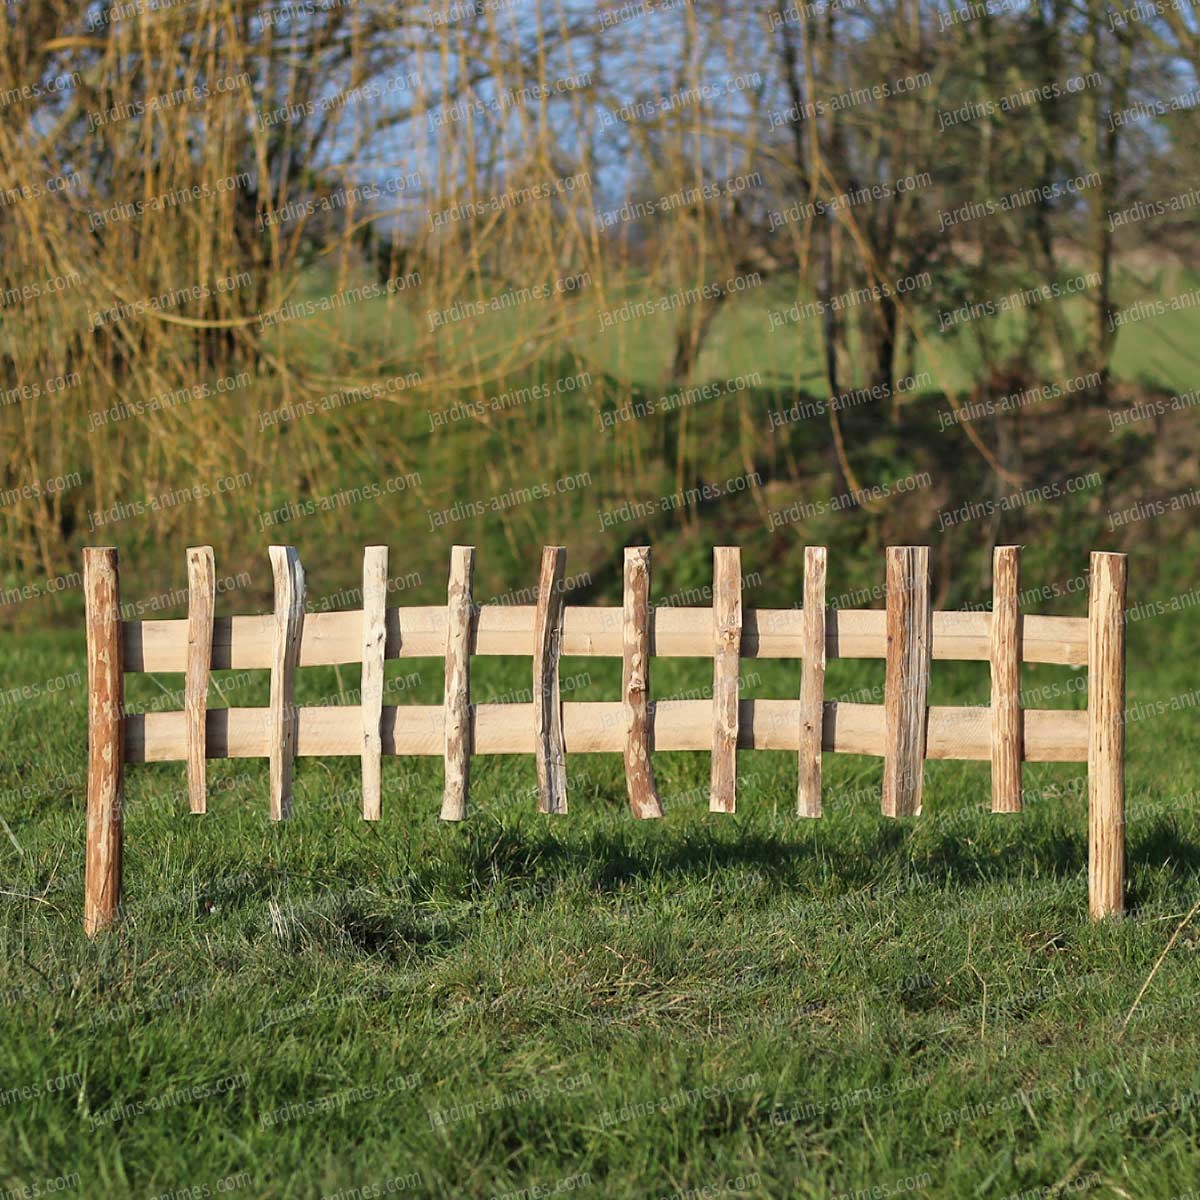 Awesome bordure de jardin en bois a planter images for Bordure de jardin en bois mr bricolage